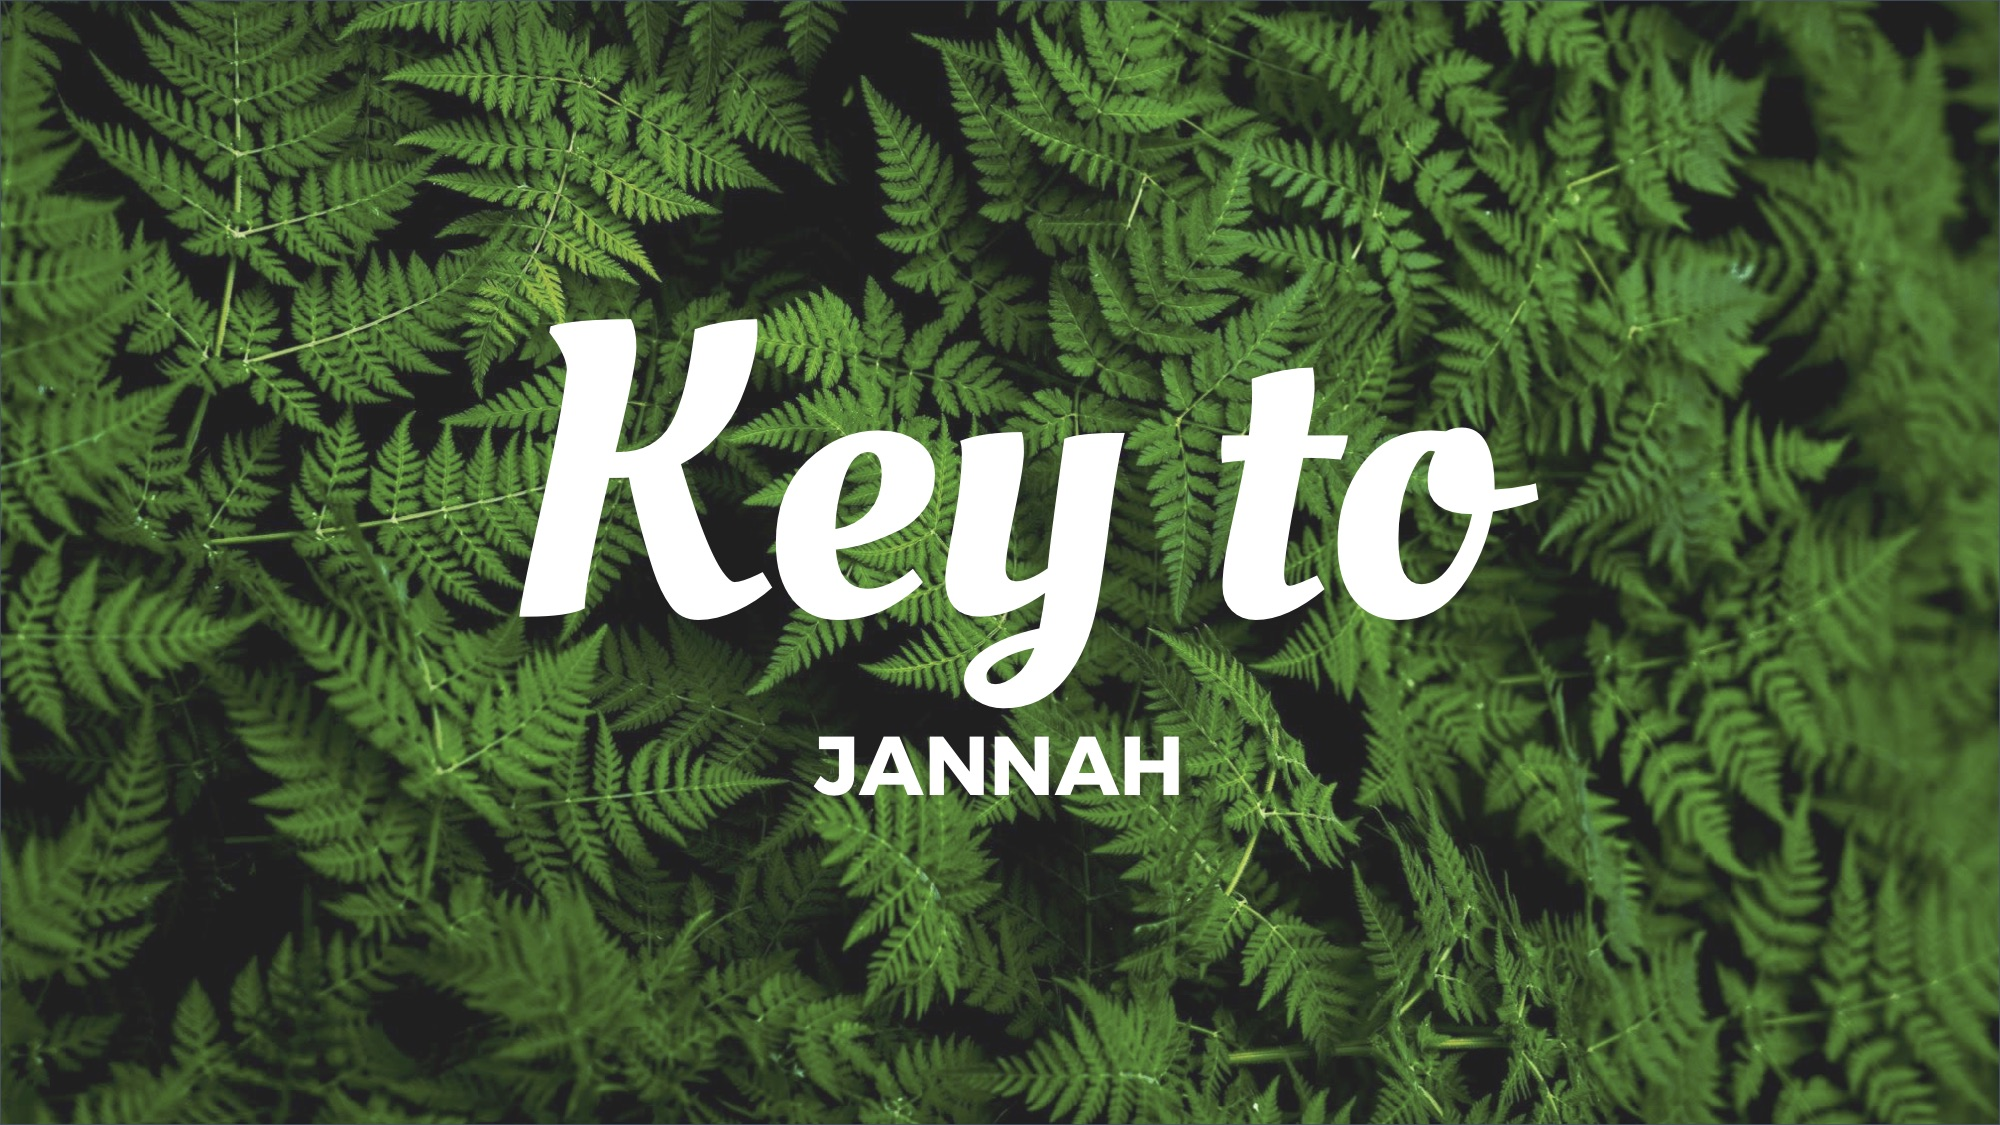 The Key to Jannah by Ustadh Muhammad Tim Humble